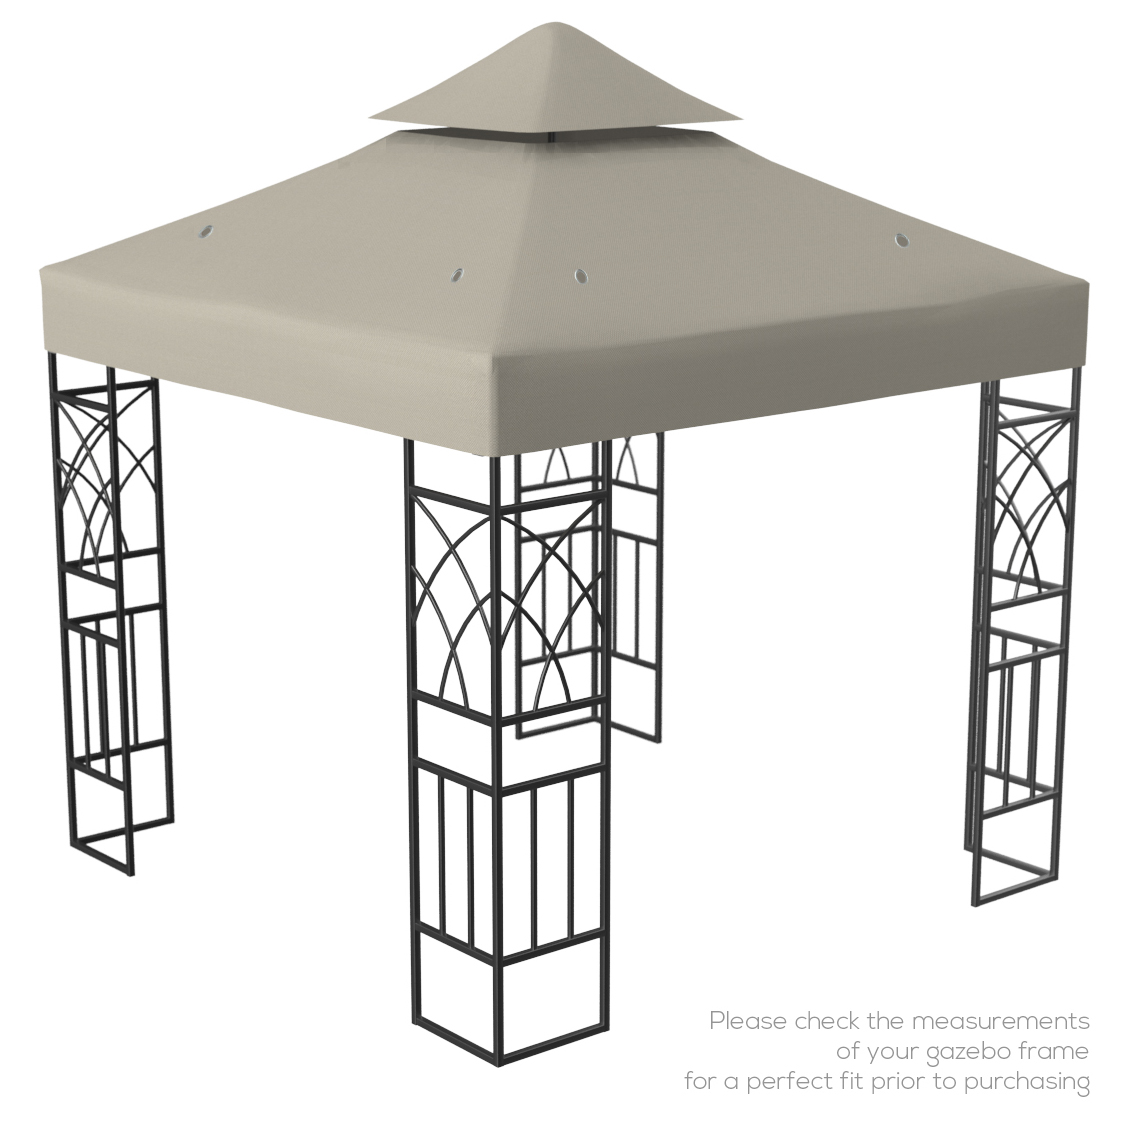 Kenley 2 Tier Gazebo Pavilion Roof Top Cover Canopy